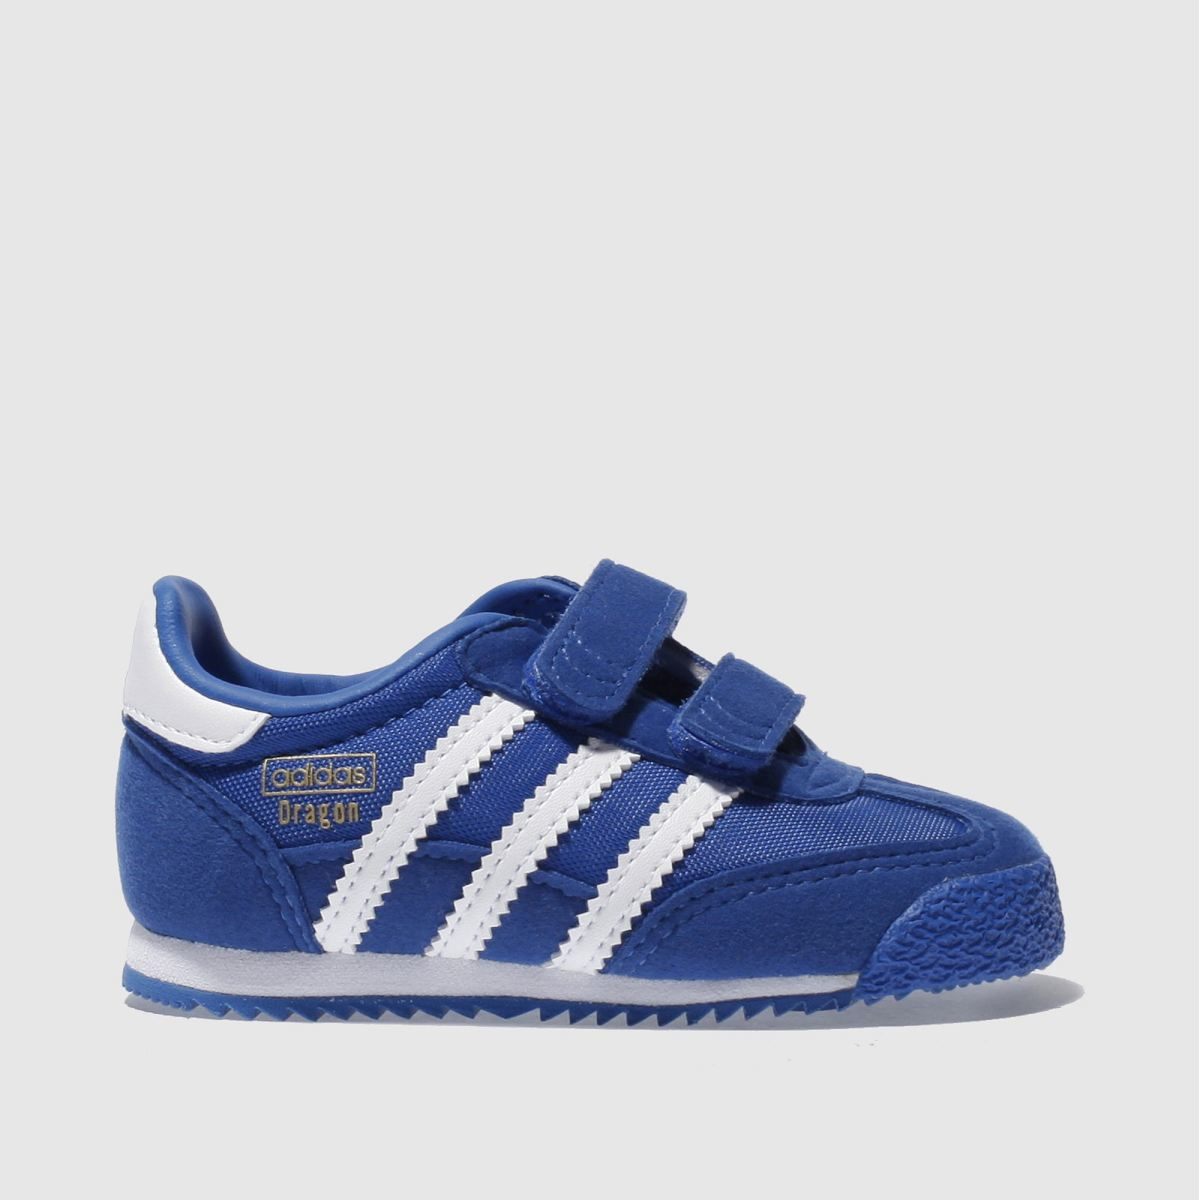 adidas blue & white dragon Boys Toddler Trainers